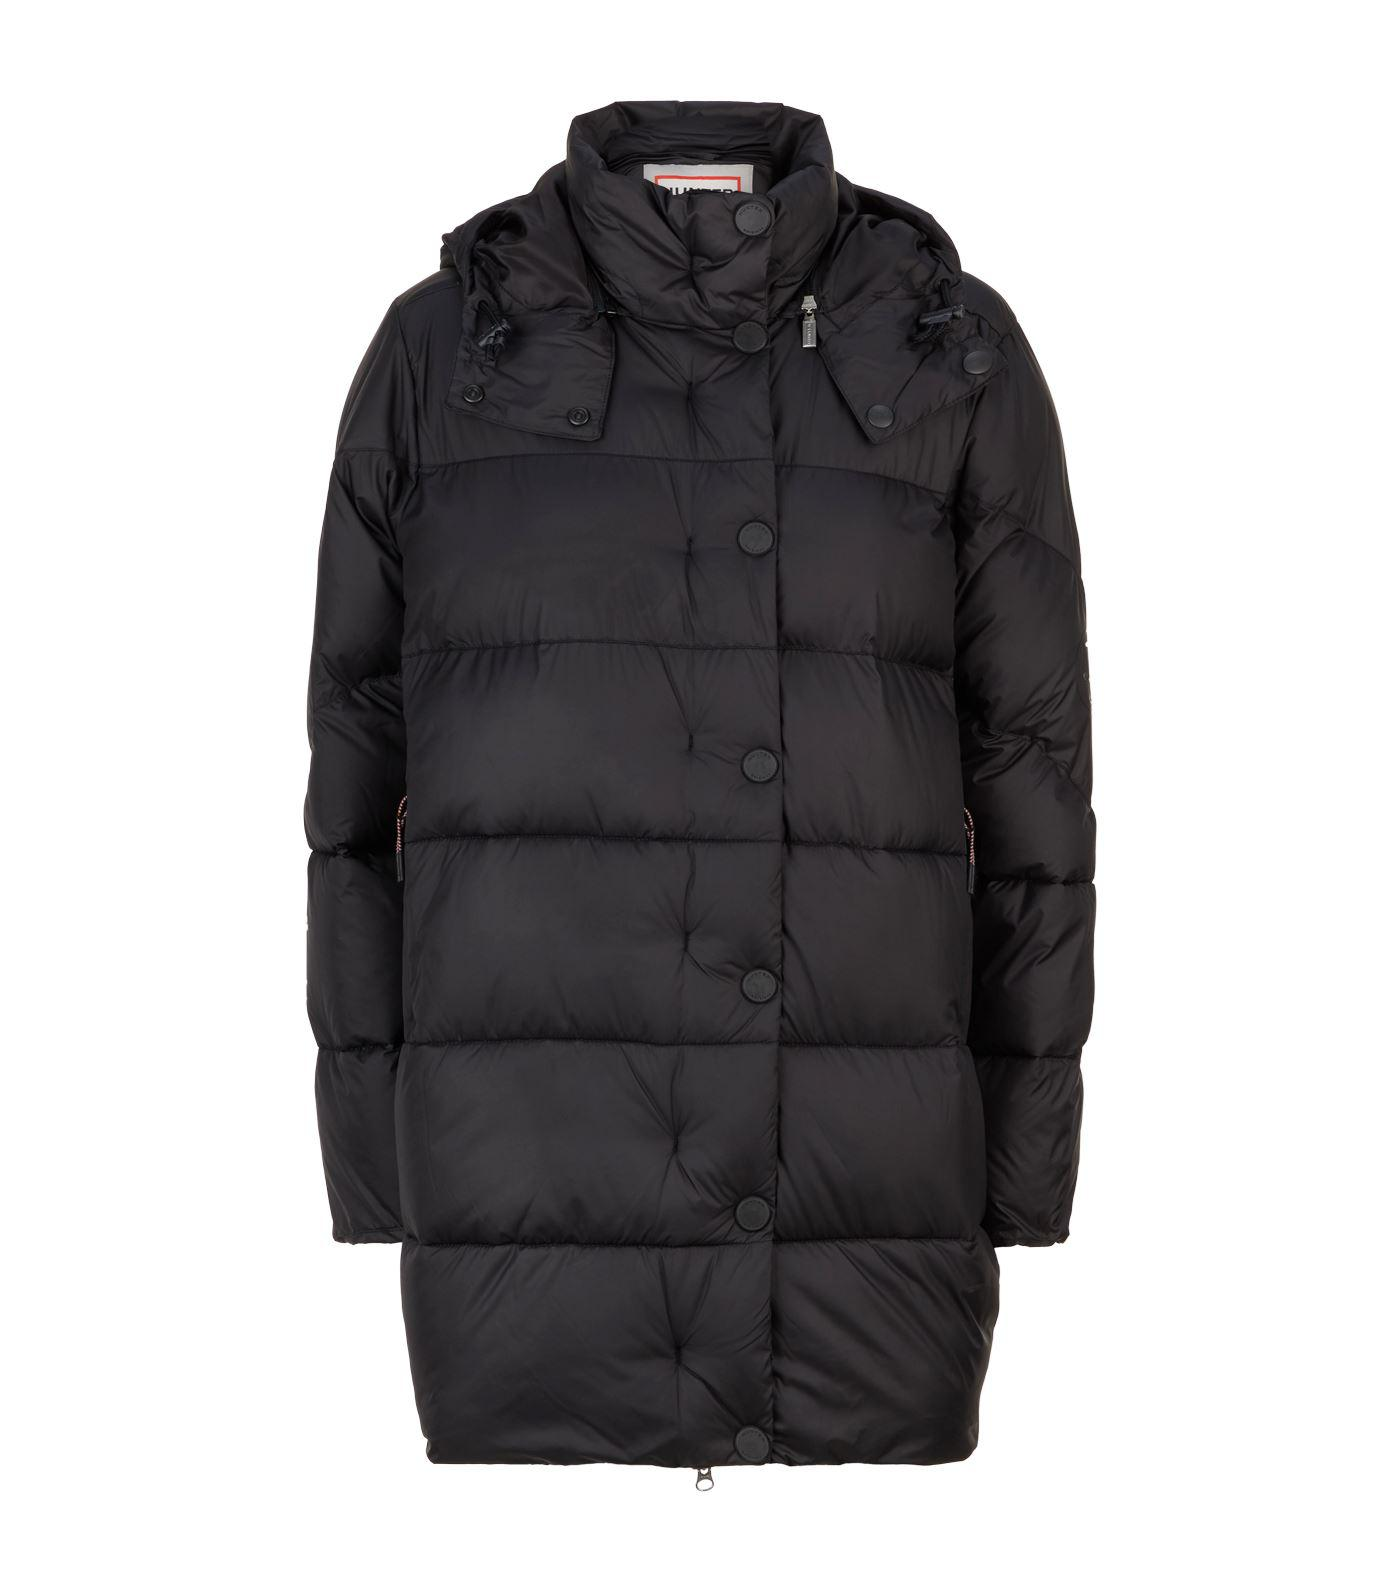 363fbccae6a91 HUNTER Original Puffer Jacket in Black - Lyst